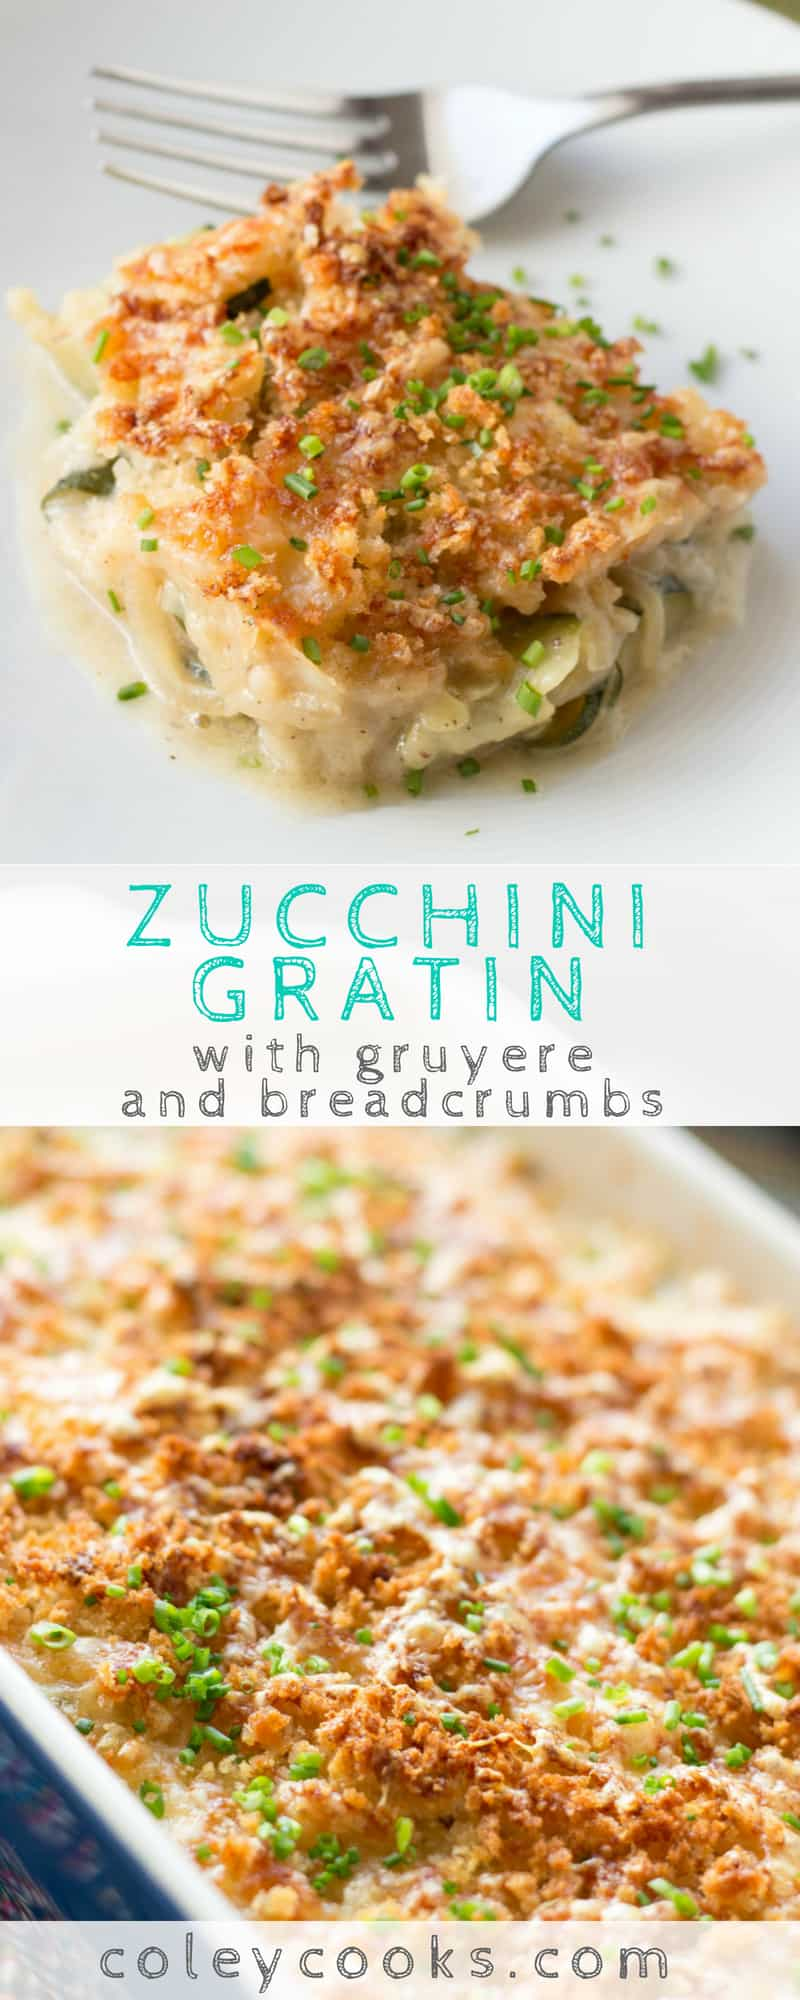 ZUCCHINI GRATIN | Ina Garten's recipe for Zucchini Gratin is so delicious! With gruyere, onions, a creamy sauce and crispy breadcrumbs #easy #zucchini #recipe #squash #barefootcontessa | ColeyCooks.com